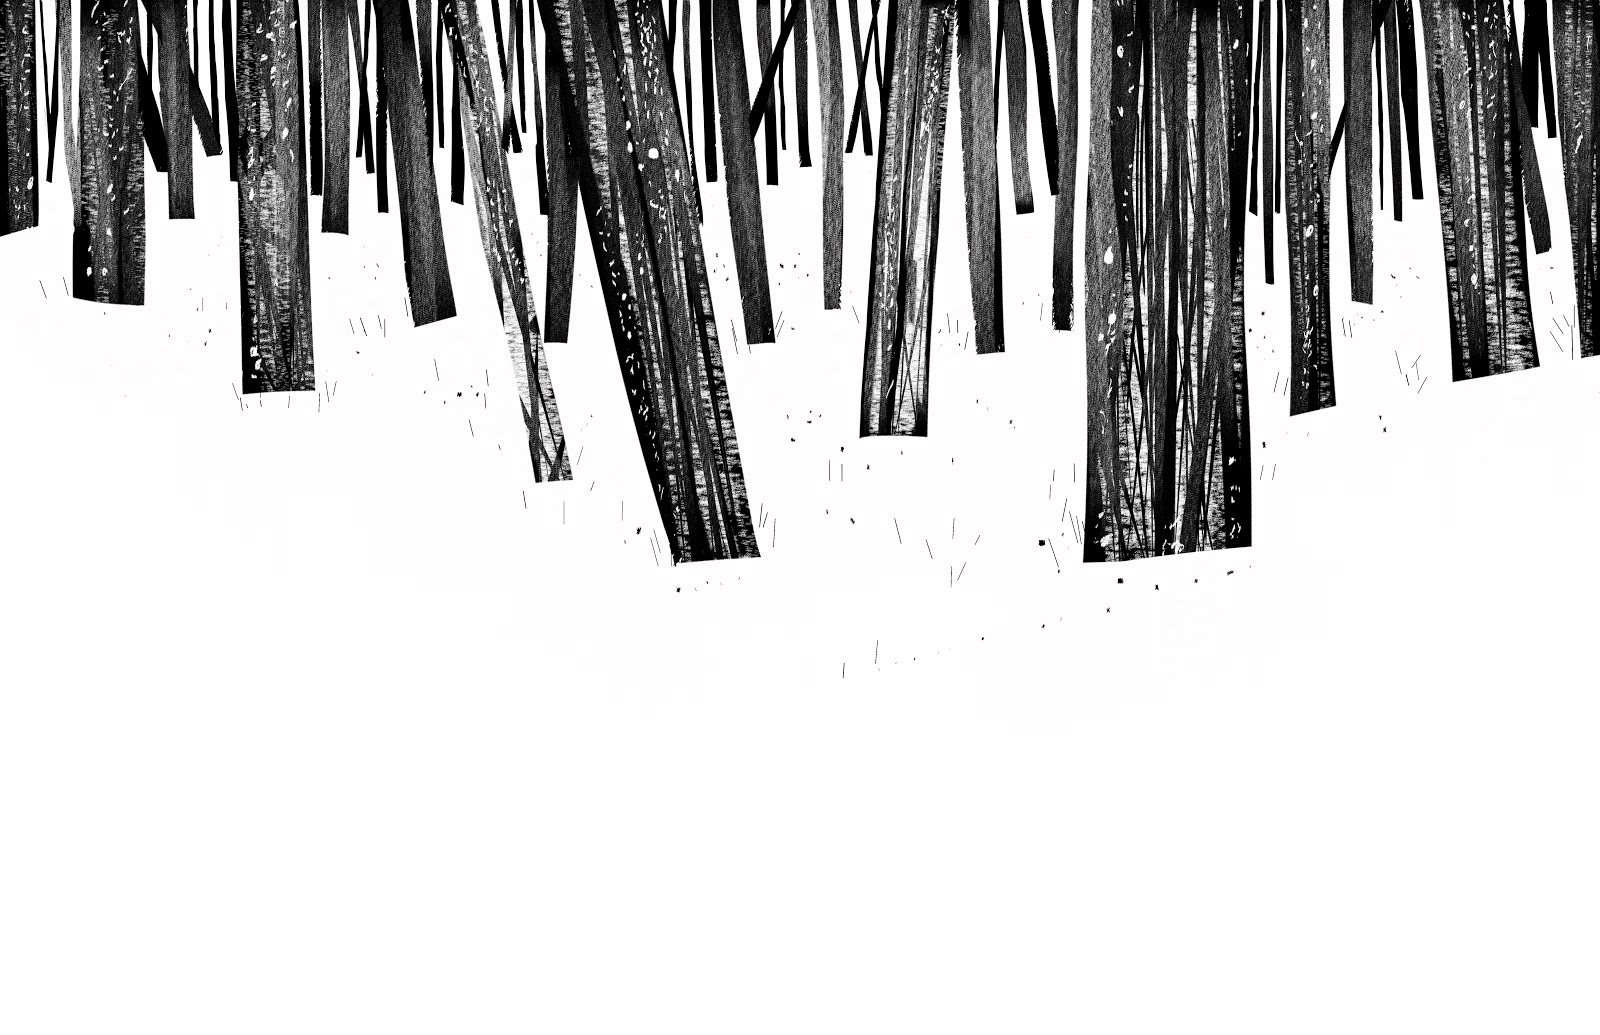 Black, White and Grey: Some Film Backgrounds.